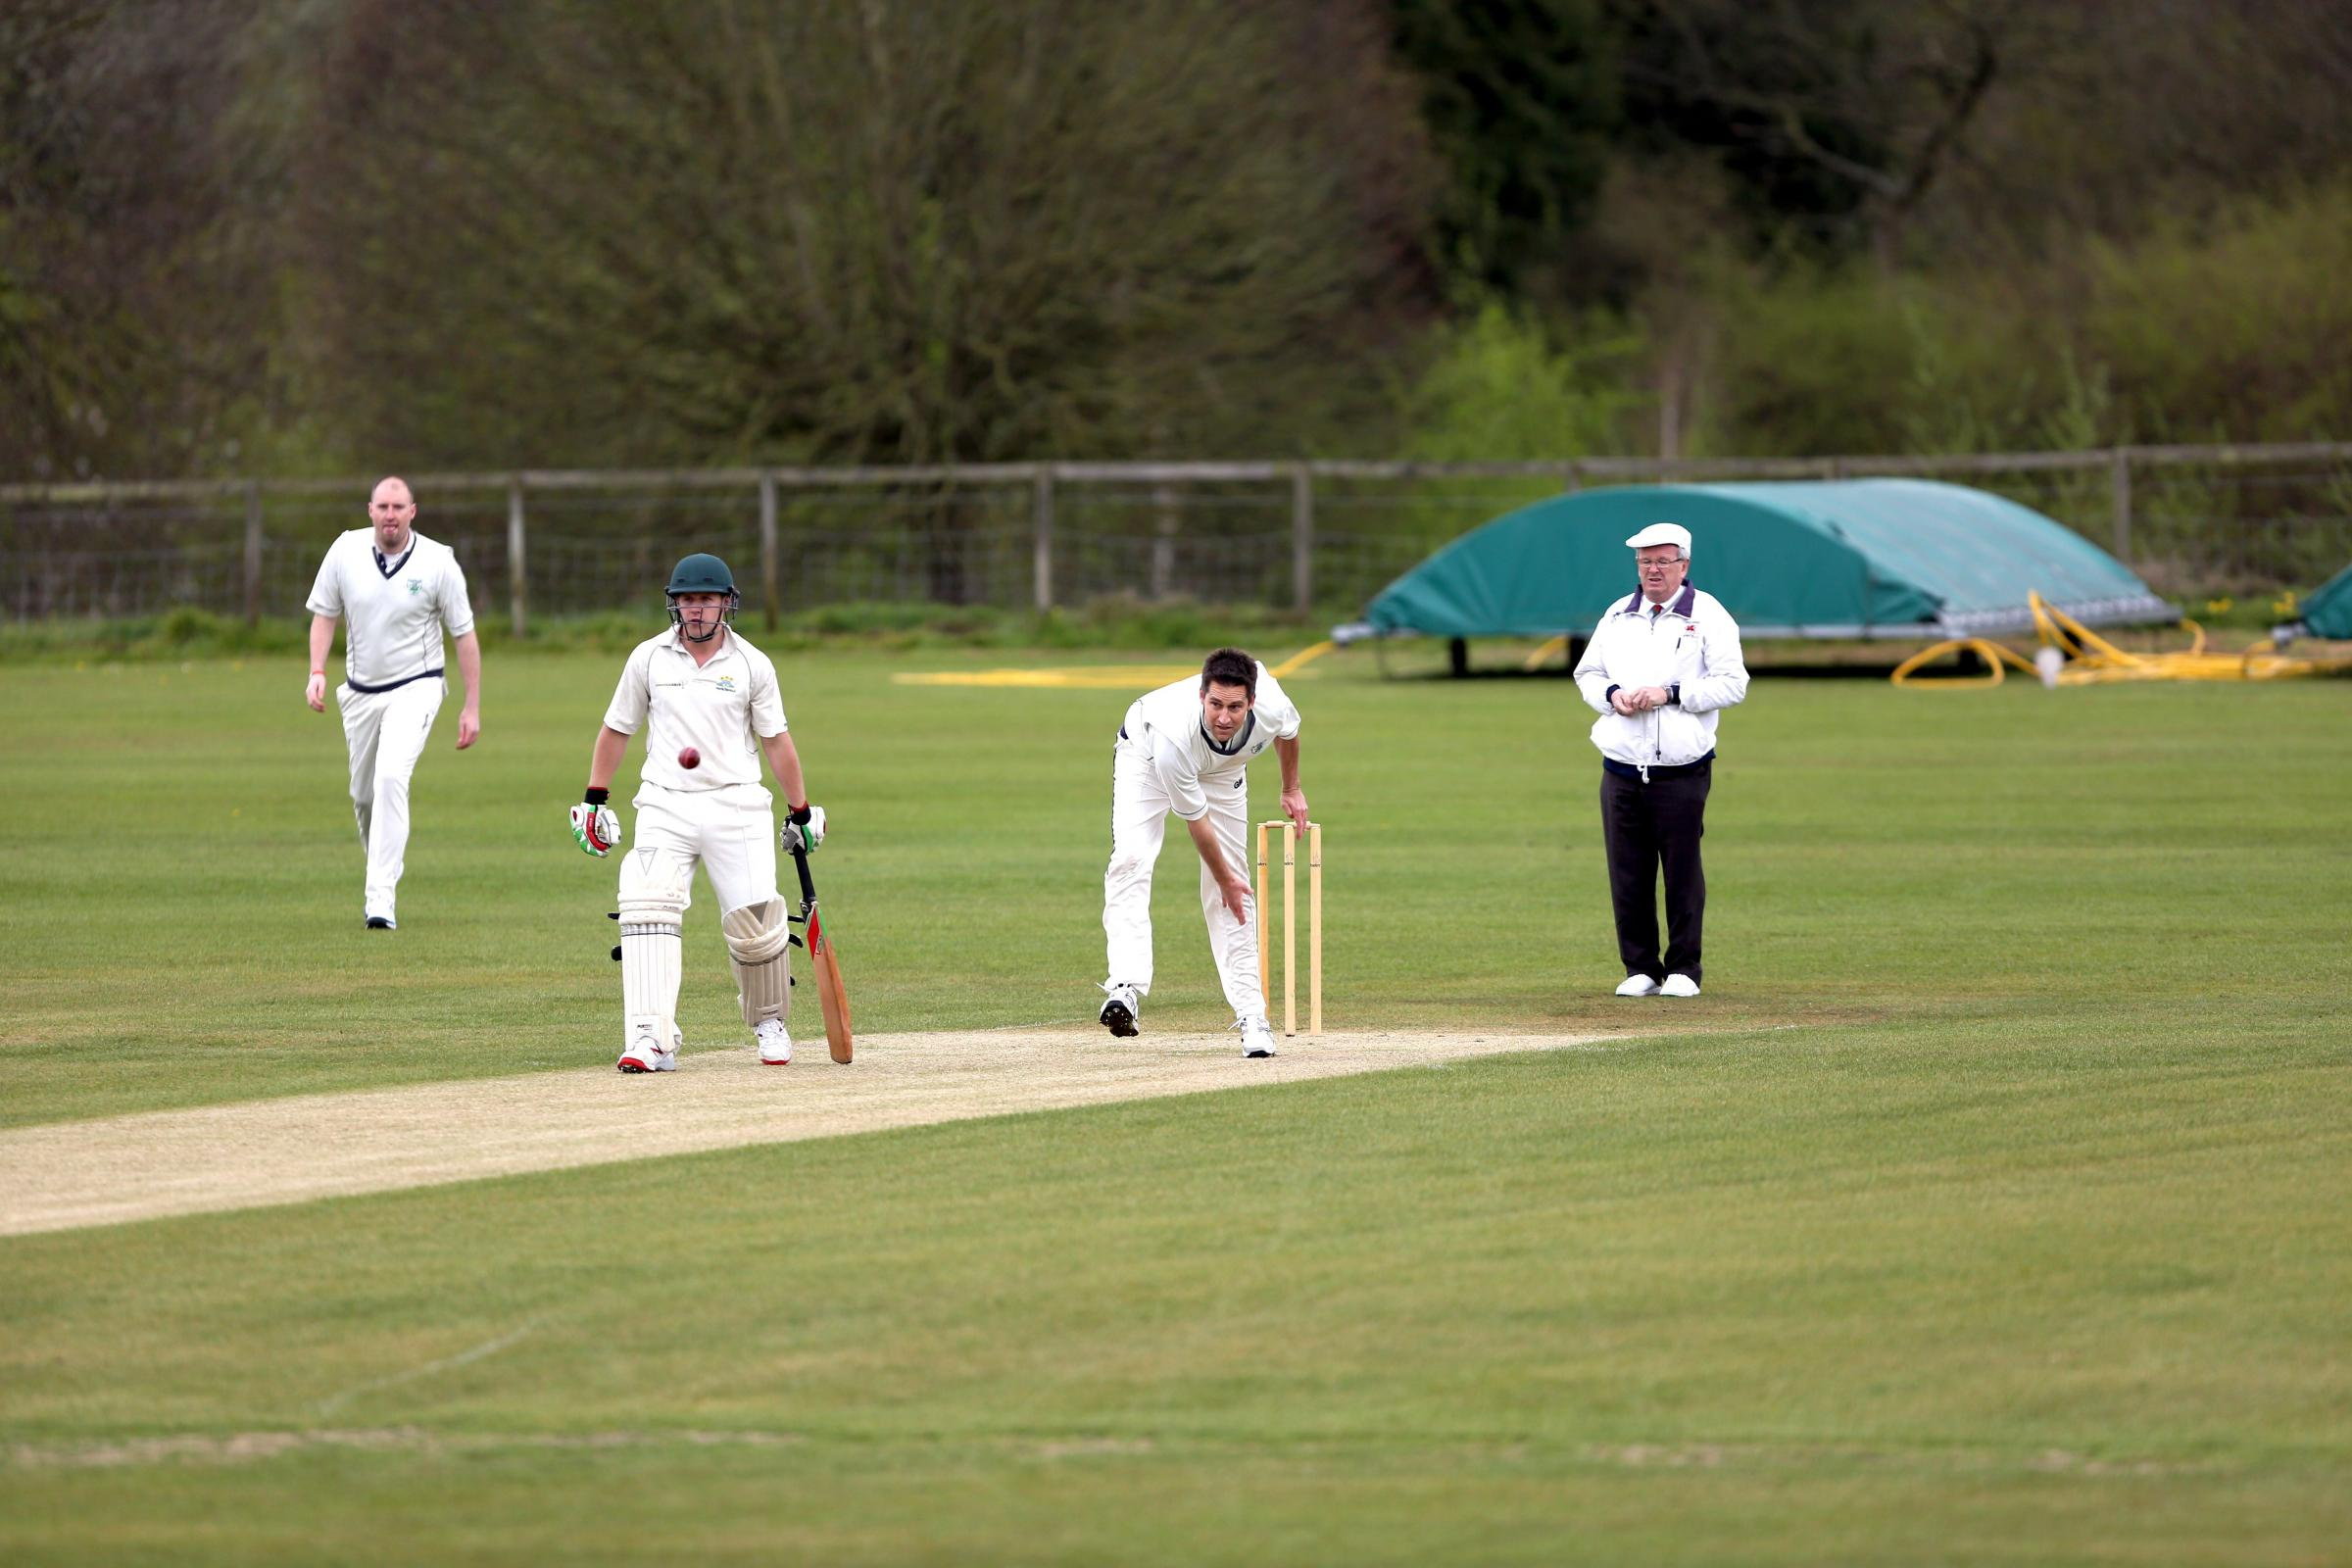 BACK IN ACTION: Hawarden Park all-rounder Campbell Marr